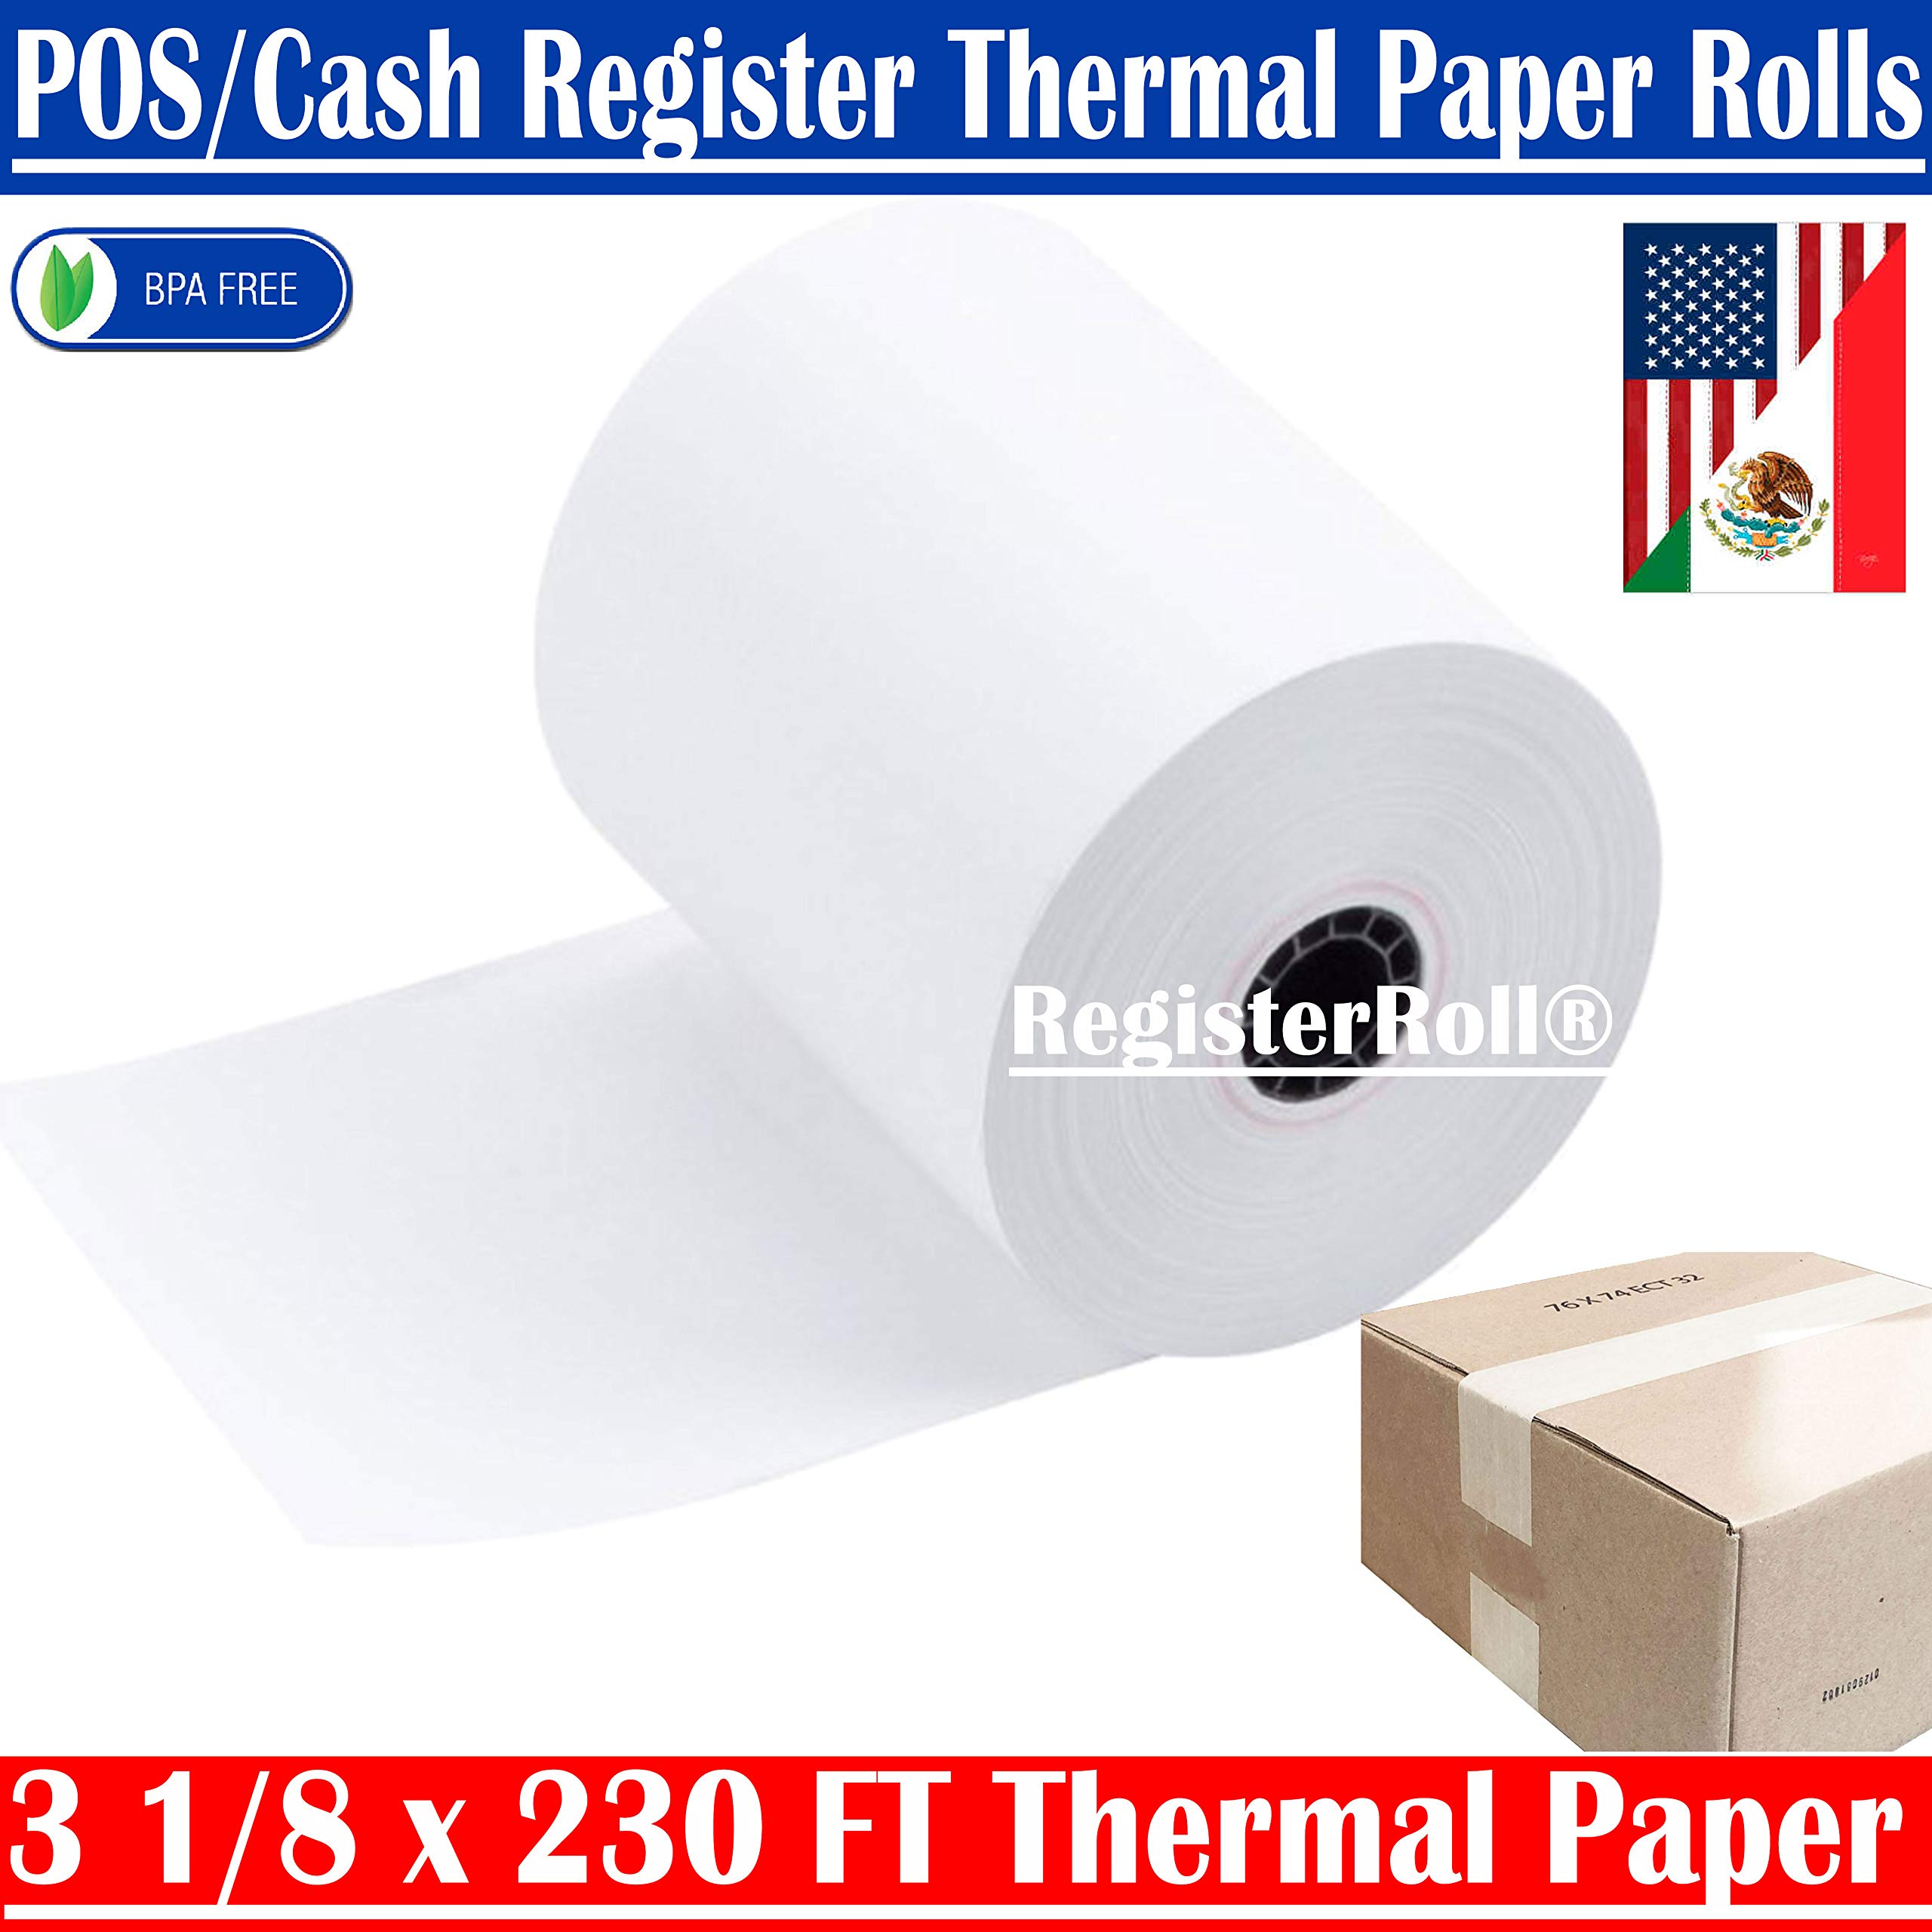 3 1 8 x 230 Thermal Paper roll 50 Pack for Most Receipt Printers, POS Systems, and Cash Registers Square pos Register Thermal Receipt Paper Rolls BPA Free - Trusted Quality from REGISTERROLL by RegisterRoll